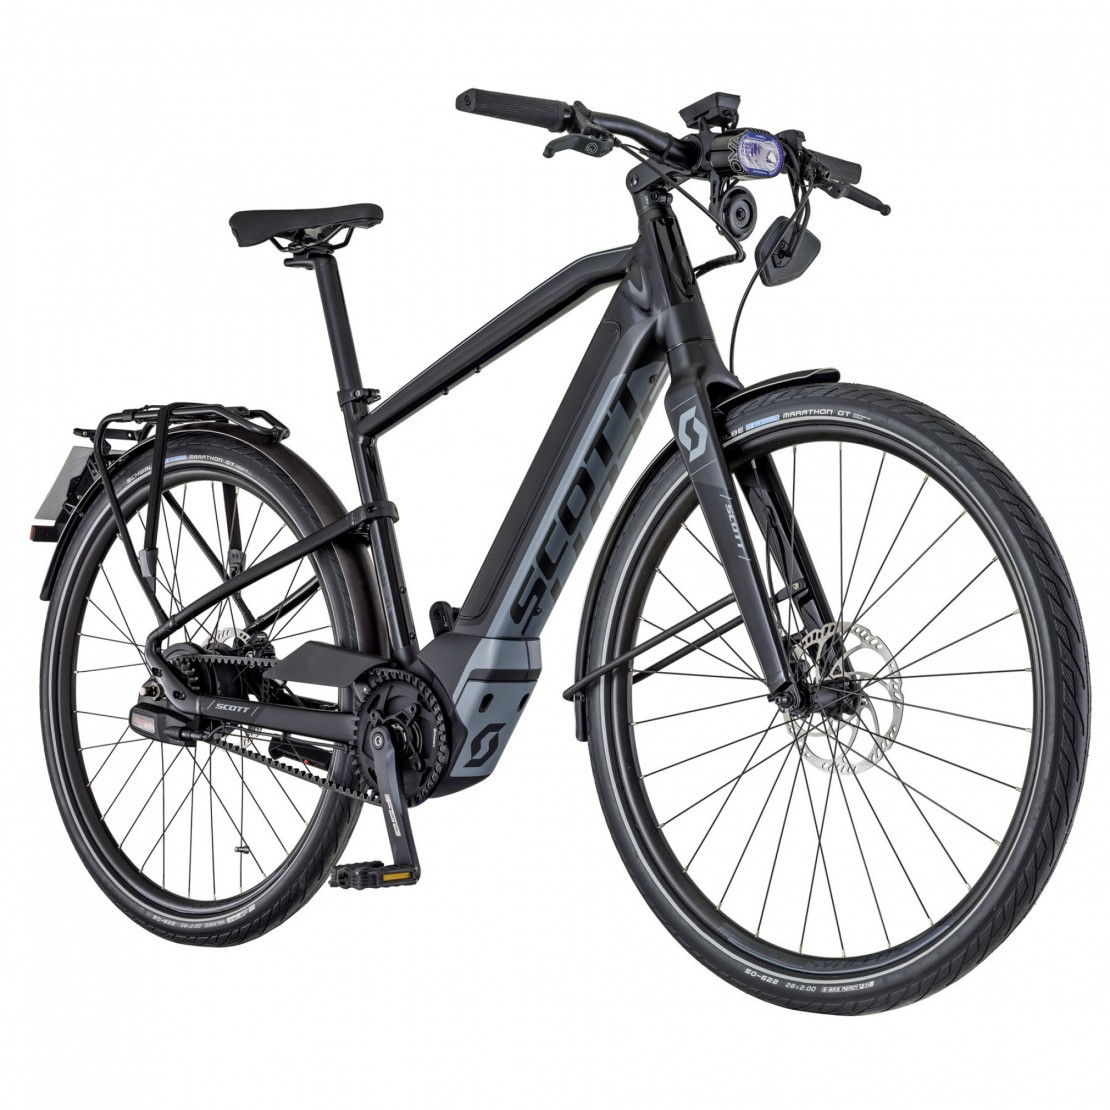 Scott E-Silence Speed 10, 2018 electric bike